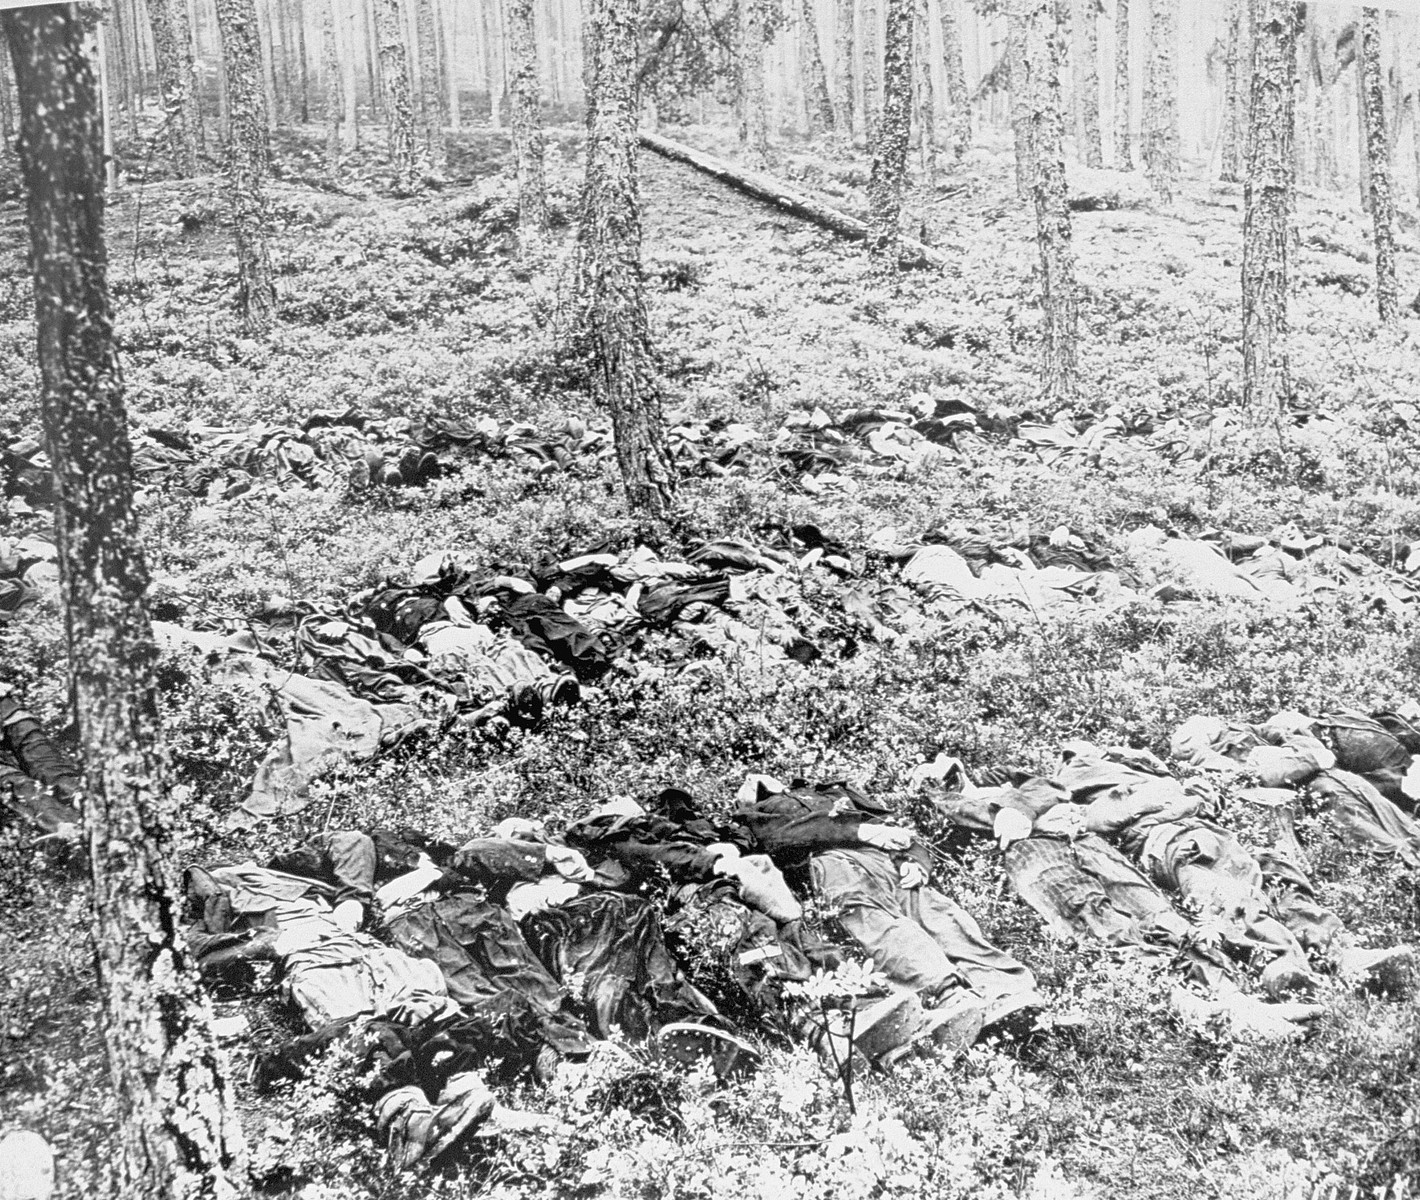 The bodies of prisoners executed by the SS prior to the evacuation are laid out in a wooded area near the Ohrdruf concentration camp.